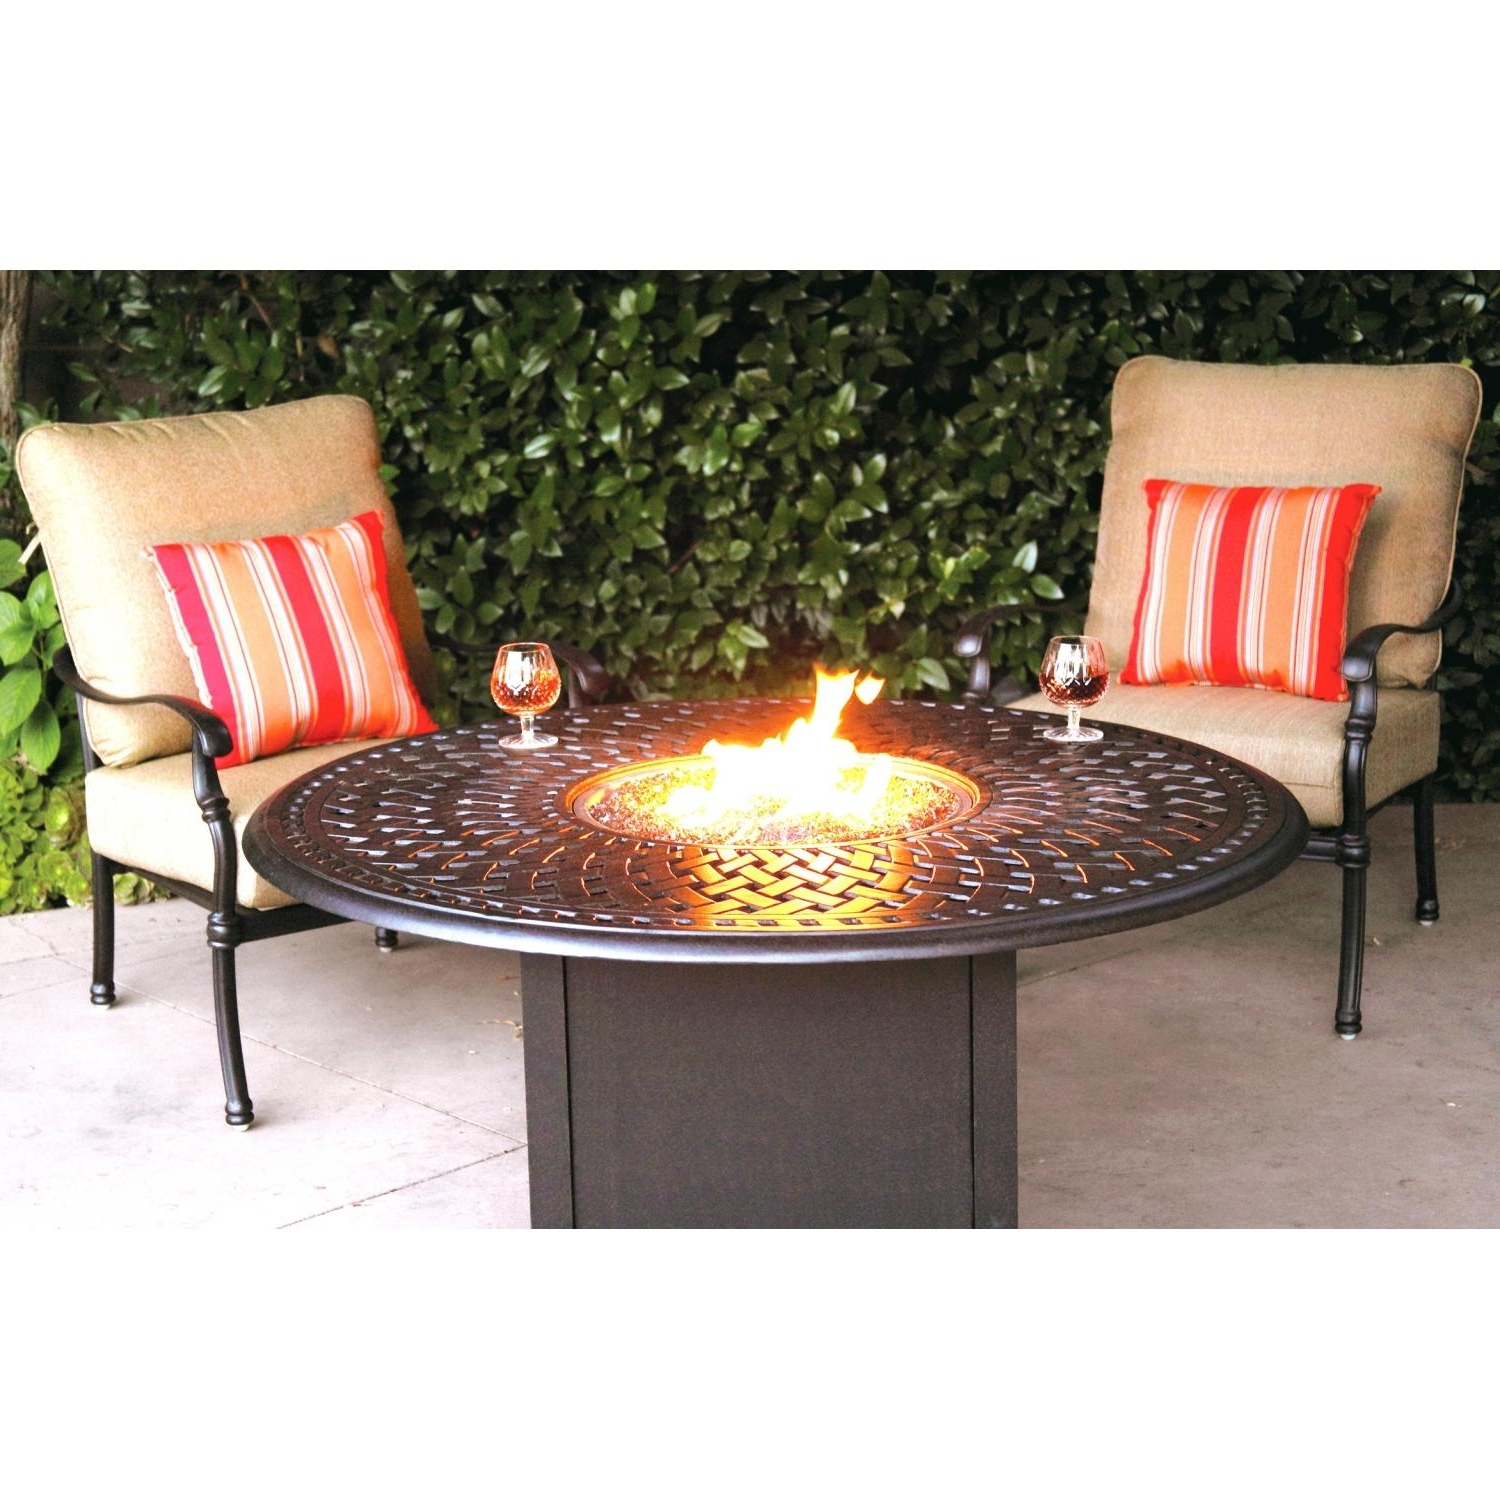 Patio Conversation Sets With Gas Fire Pit With Regard To Well Known Darlee Florence 3 Piece Aluminum Patio Fire Pit Seating Set (View 10 of 15)